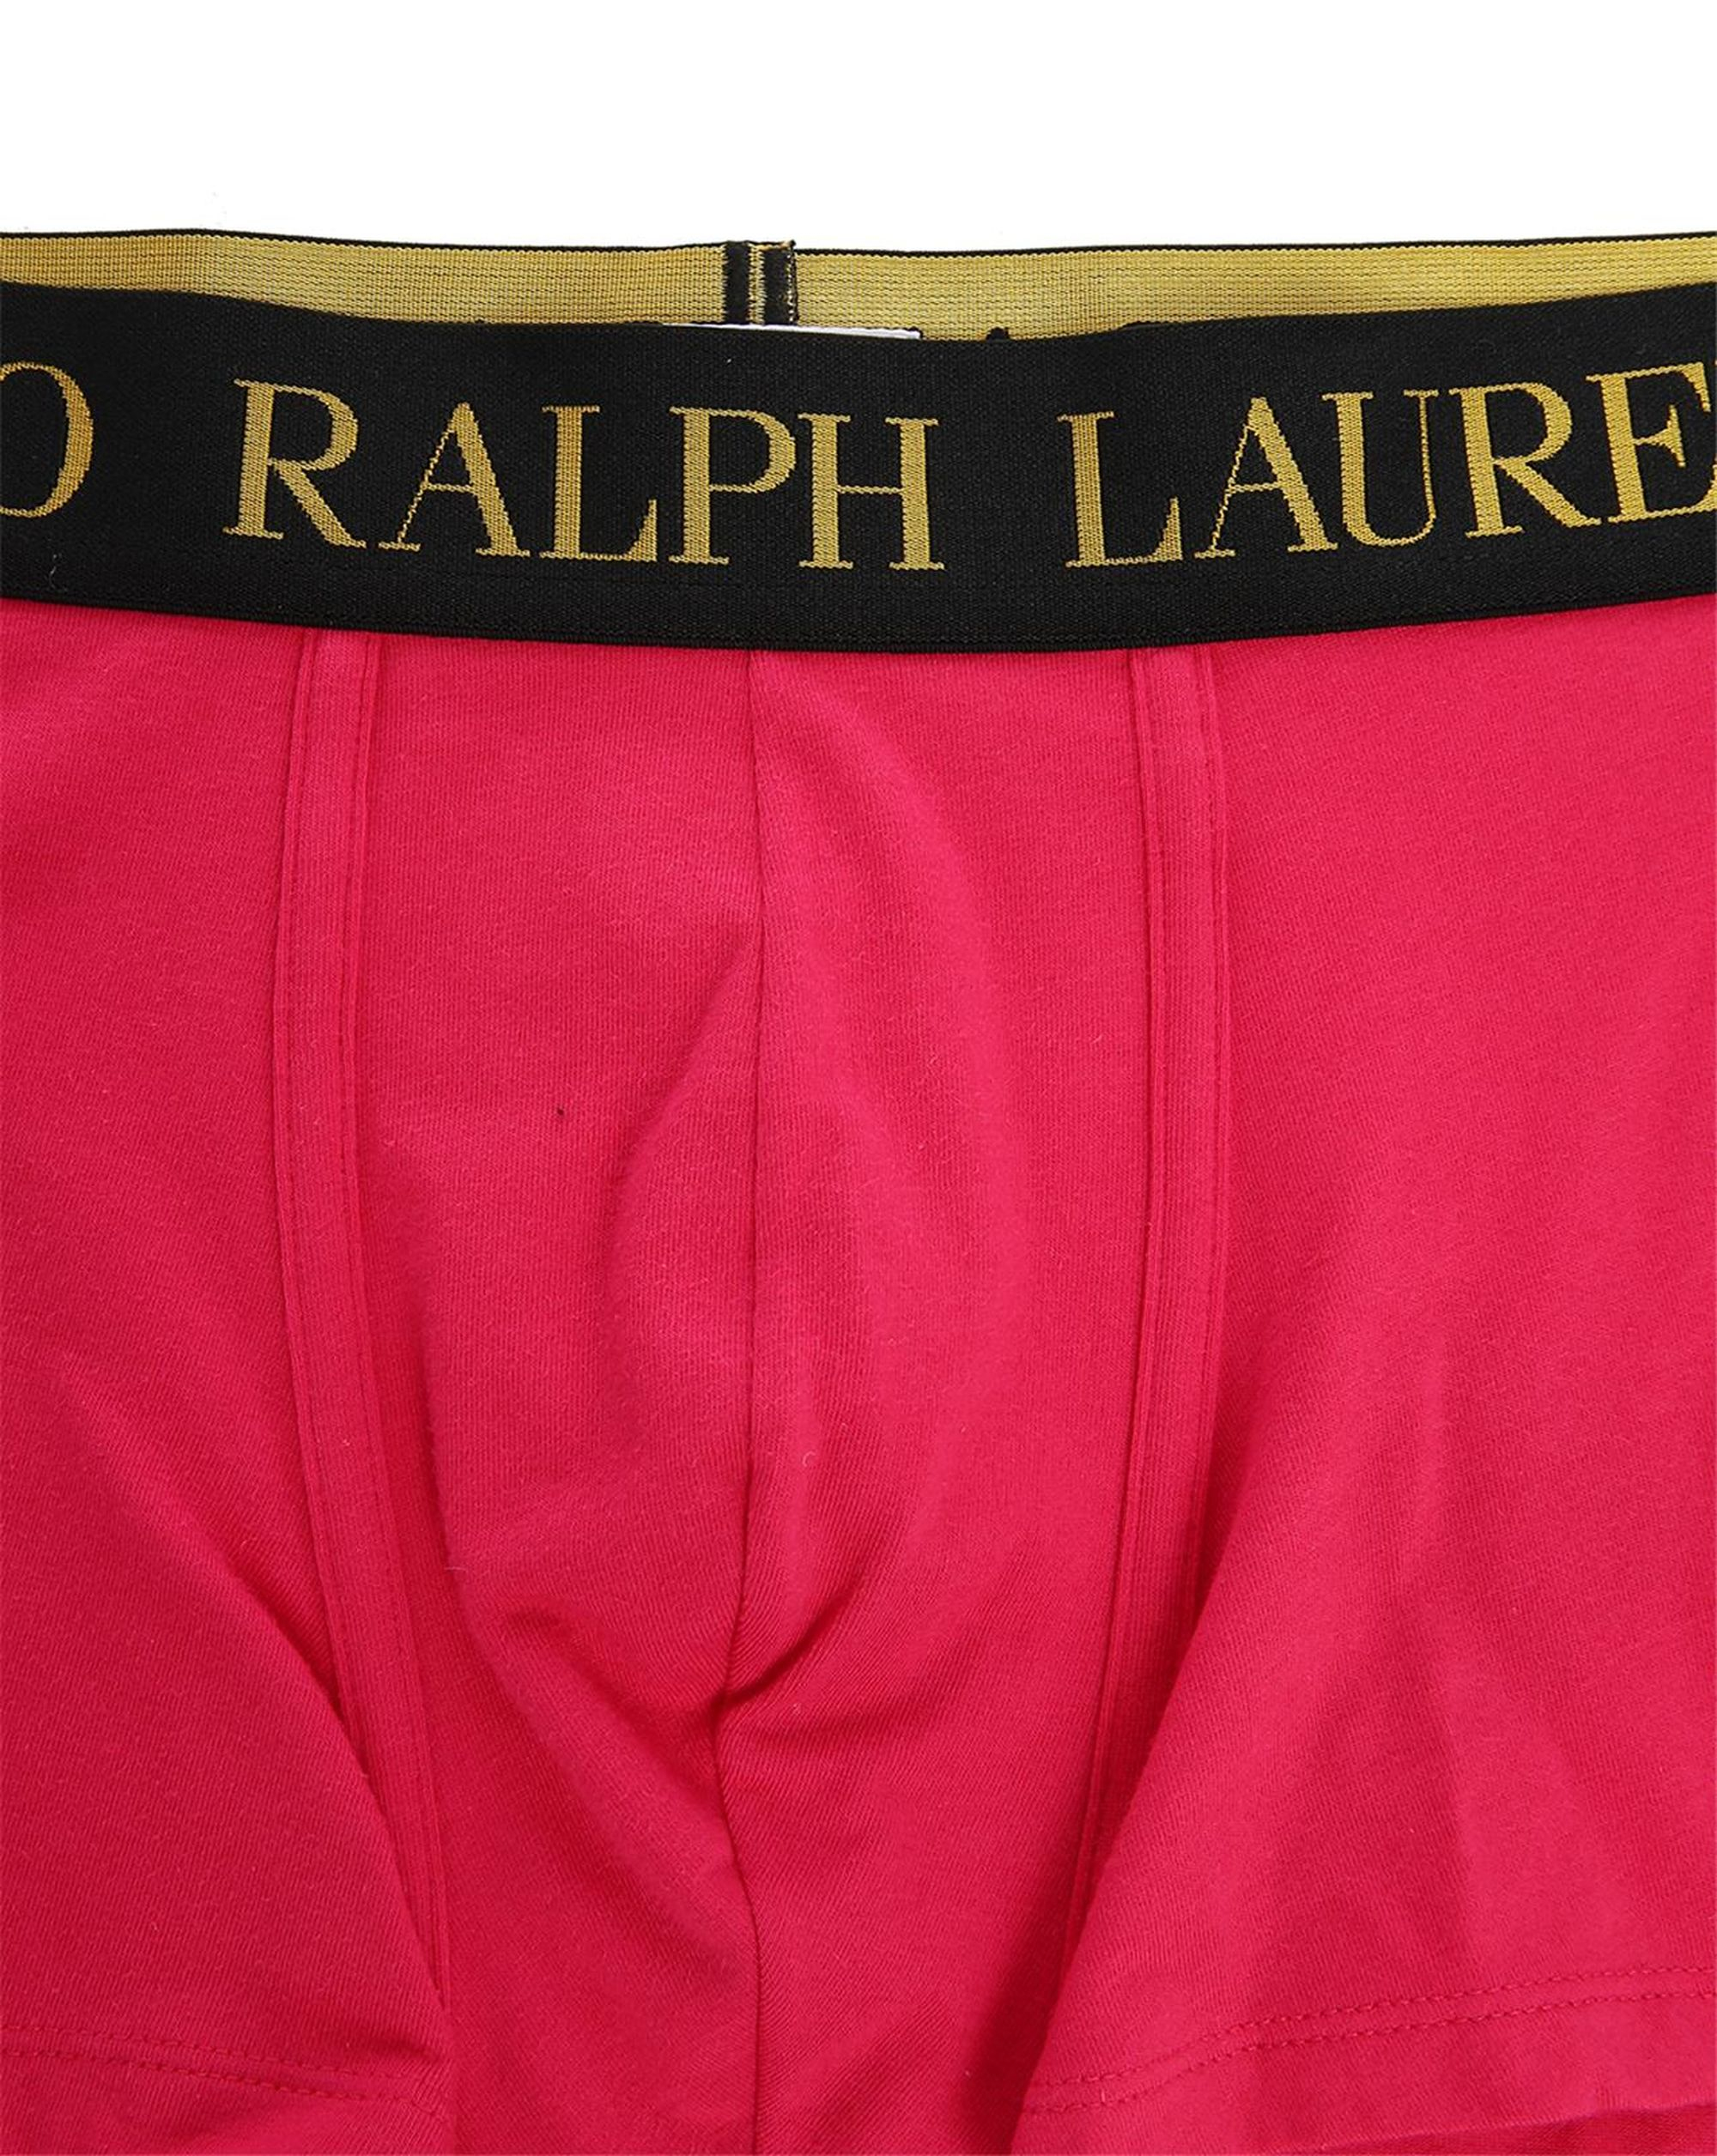 Polo Ralph Lauren Big Pony Shorts Red